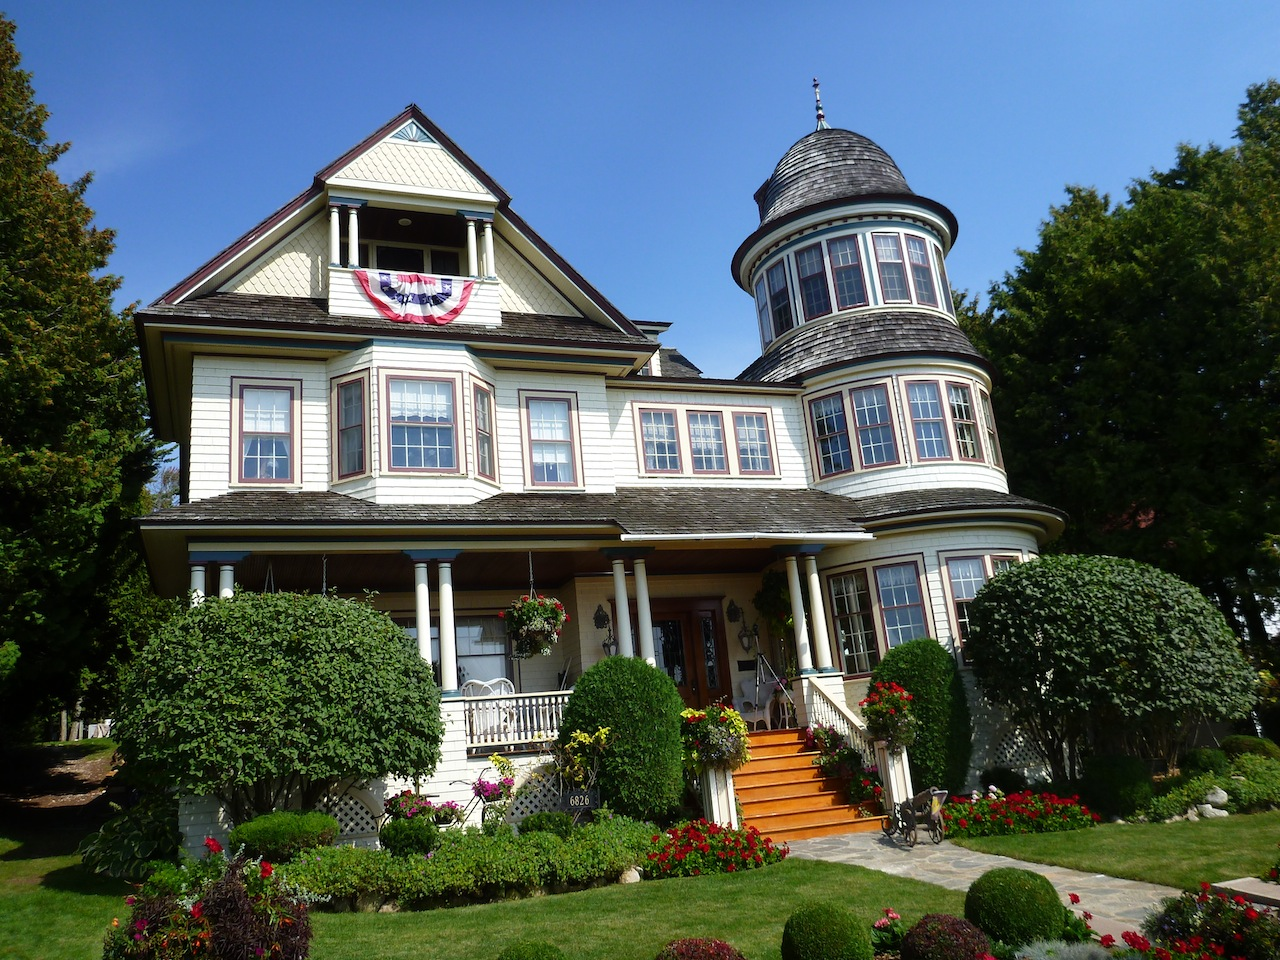 One Of The Victorian Houses On The Island